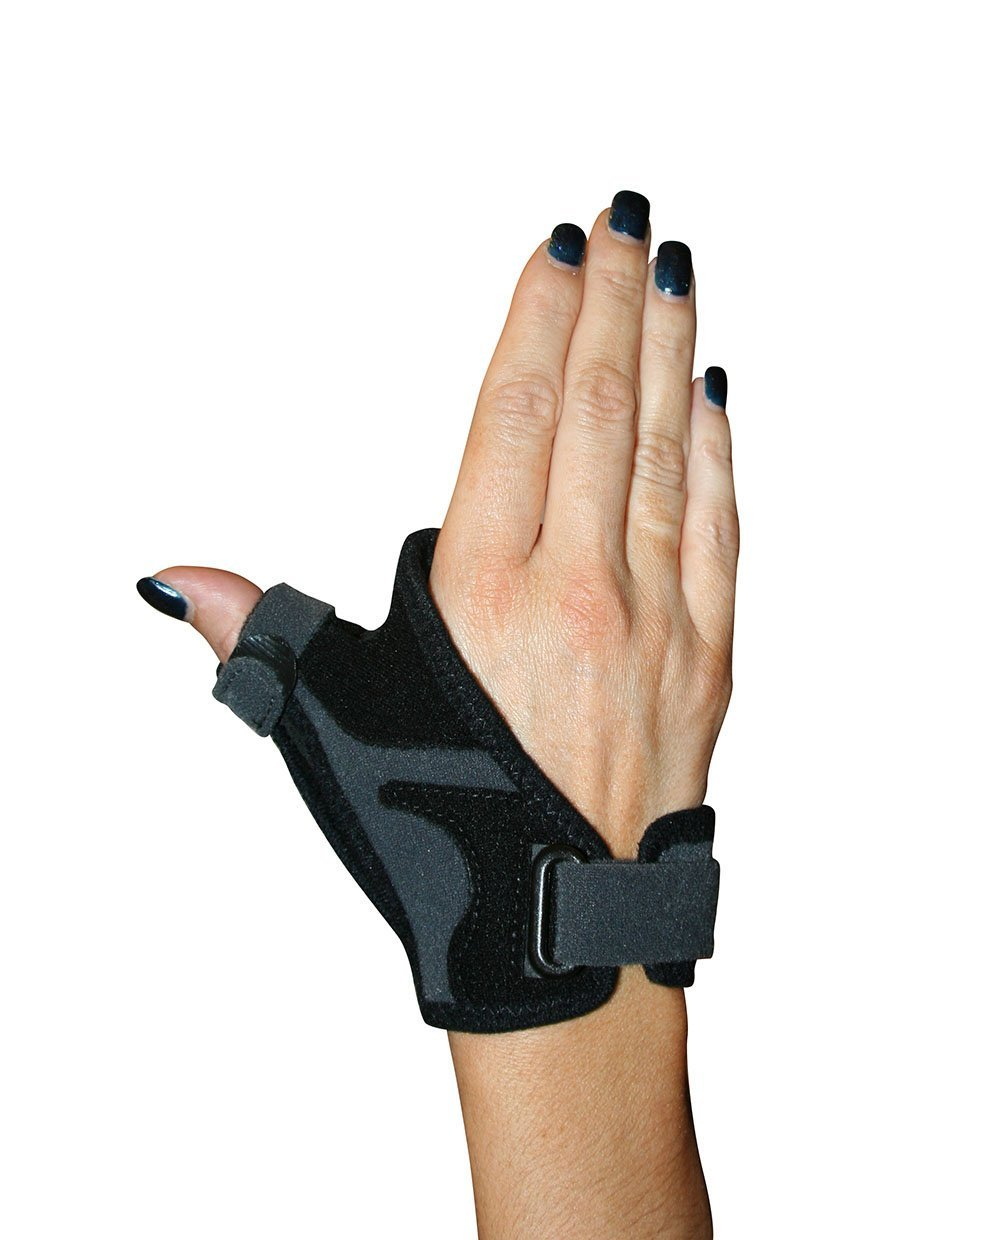 Thumb Splint - Thumb immobilisation splint for thumb osteoarthritis, thumb sprains or following thumb surgery. (Medium/Large, right)